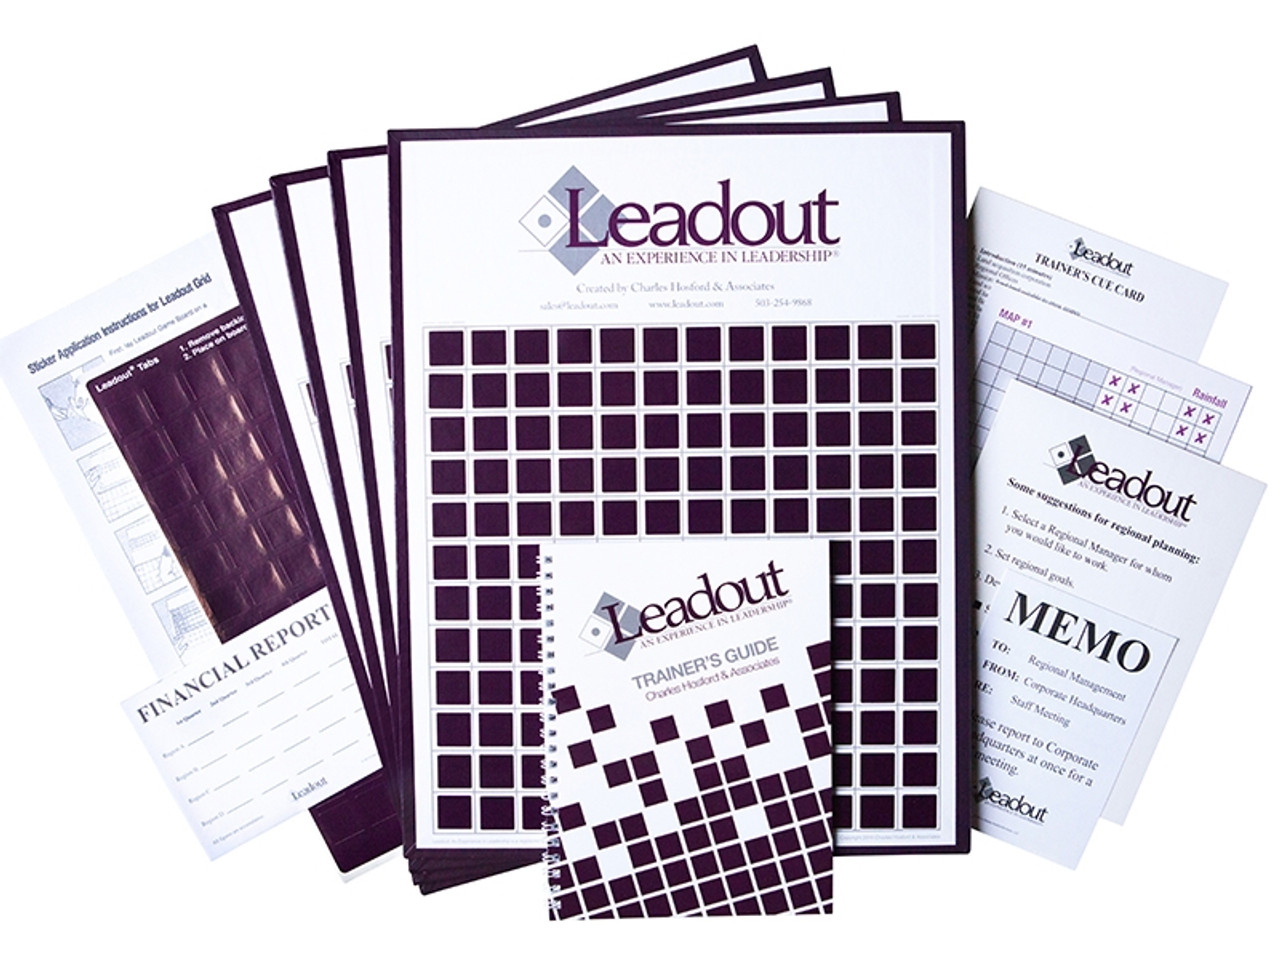 Leadout: An Experience in Leadership